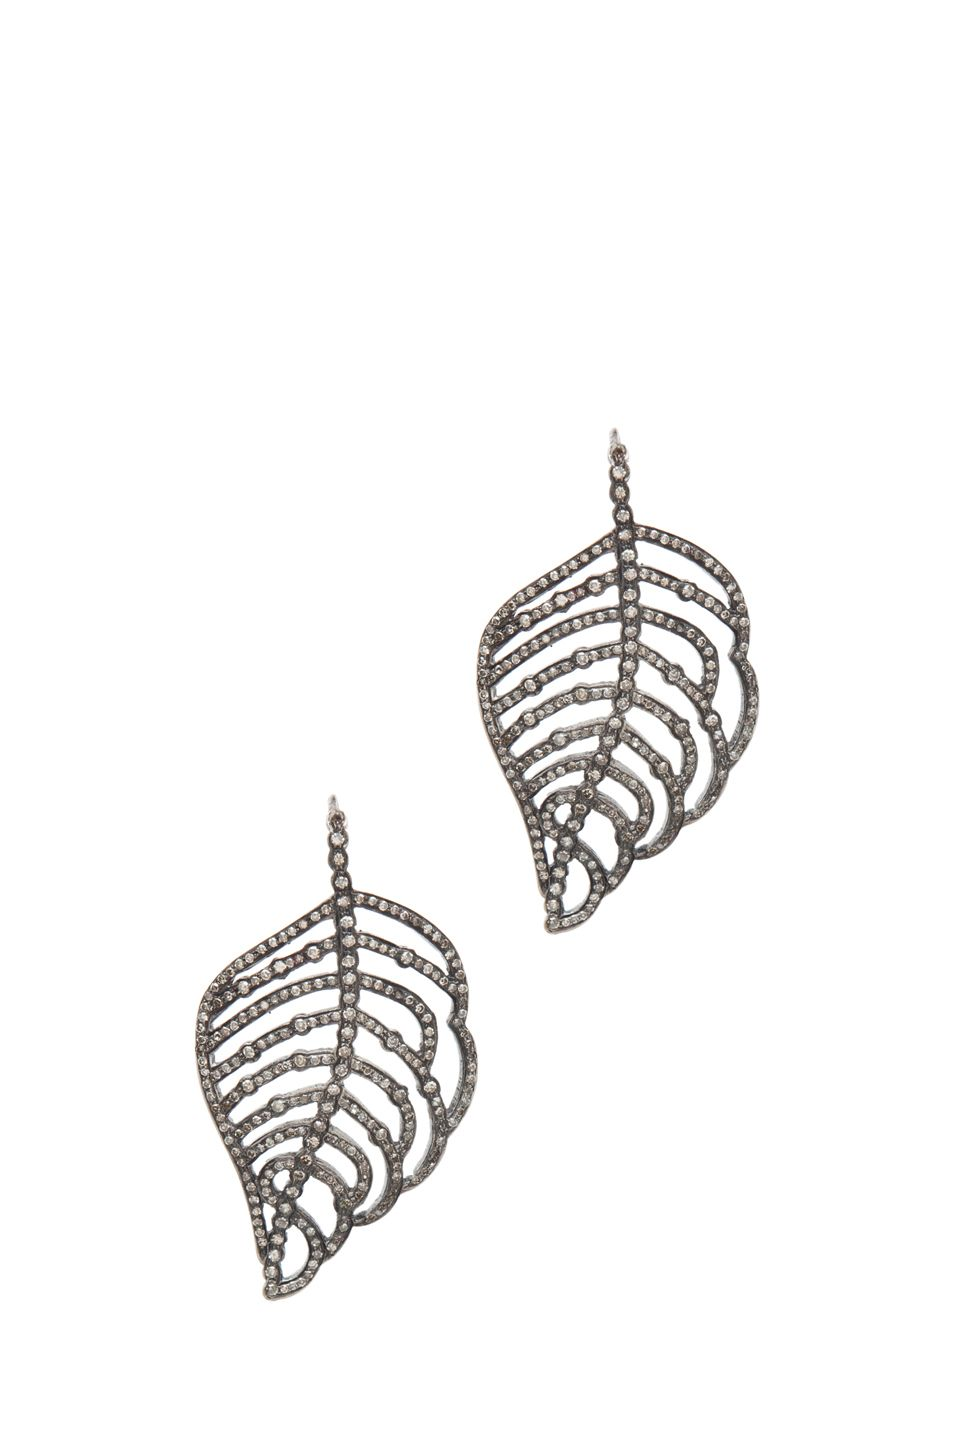 Simply beautiful Irit Design Feather Diamond Earrings in Silver